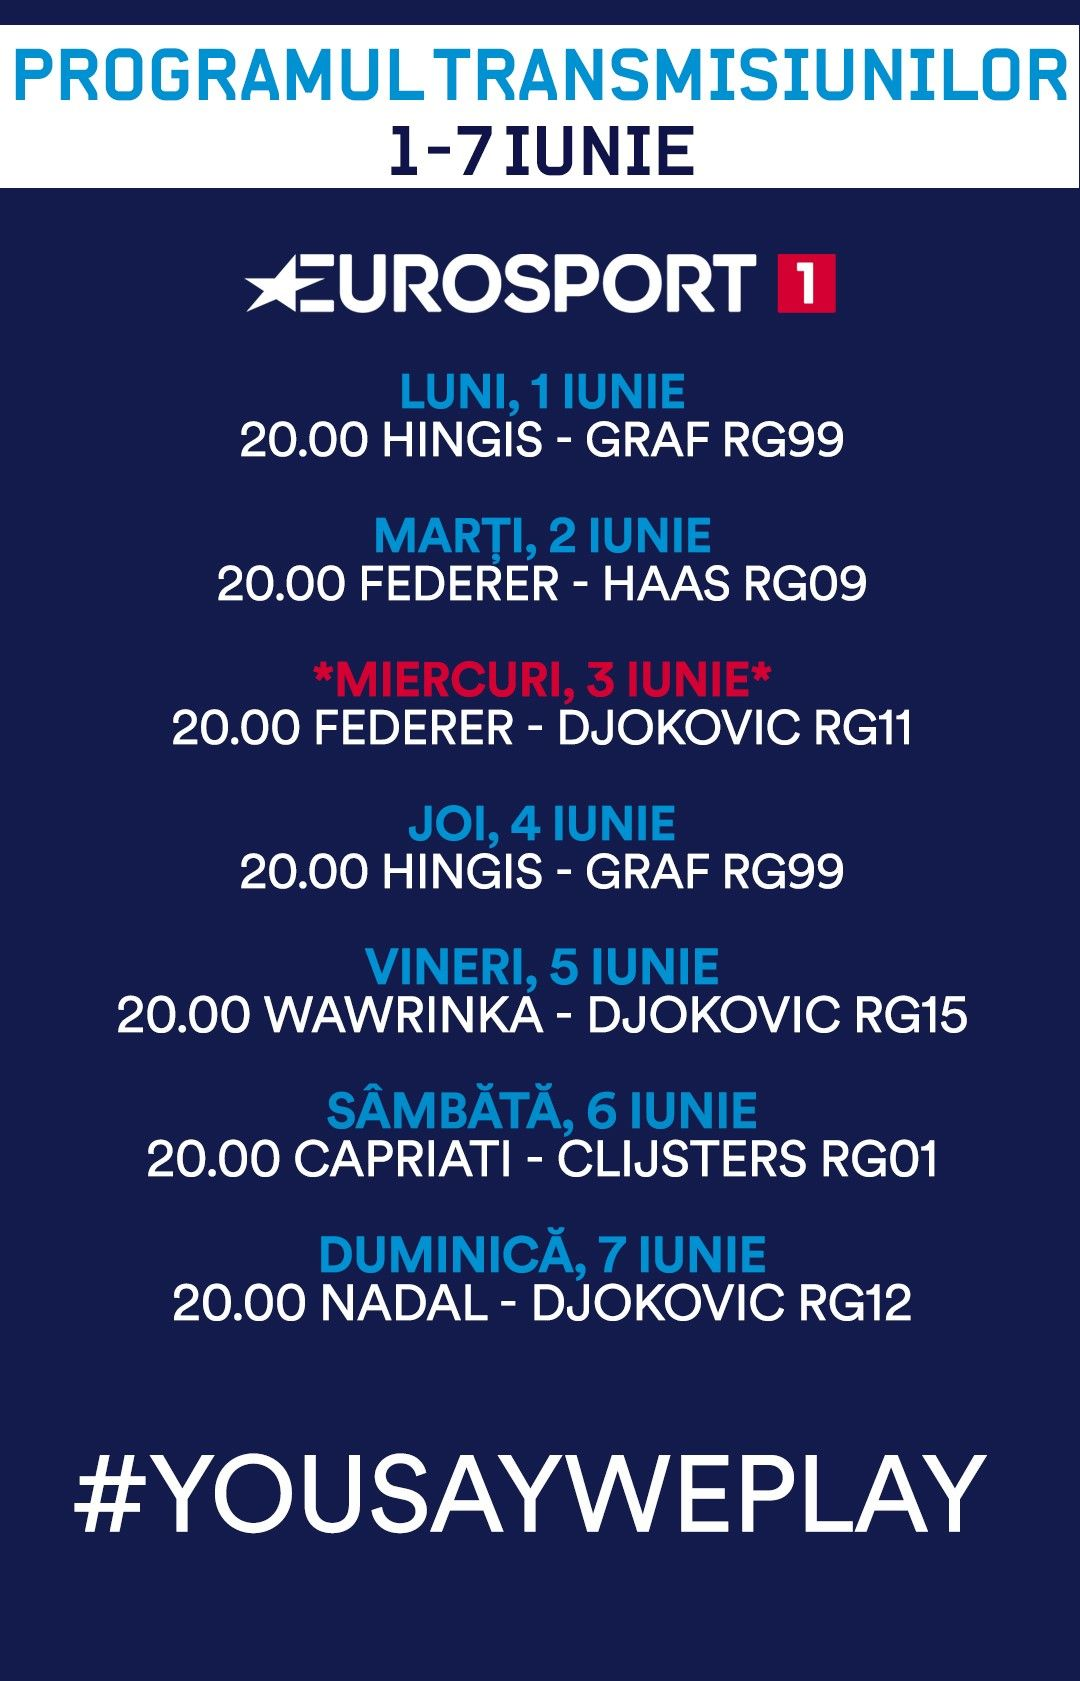 https://imgresizer.eurosport.com/unsafe/0x0/filters:format(jpeg):focal(1262x298:1264x296)/origin-imgresizer.eurosport.com/2020/06/02/2827070.jpg